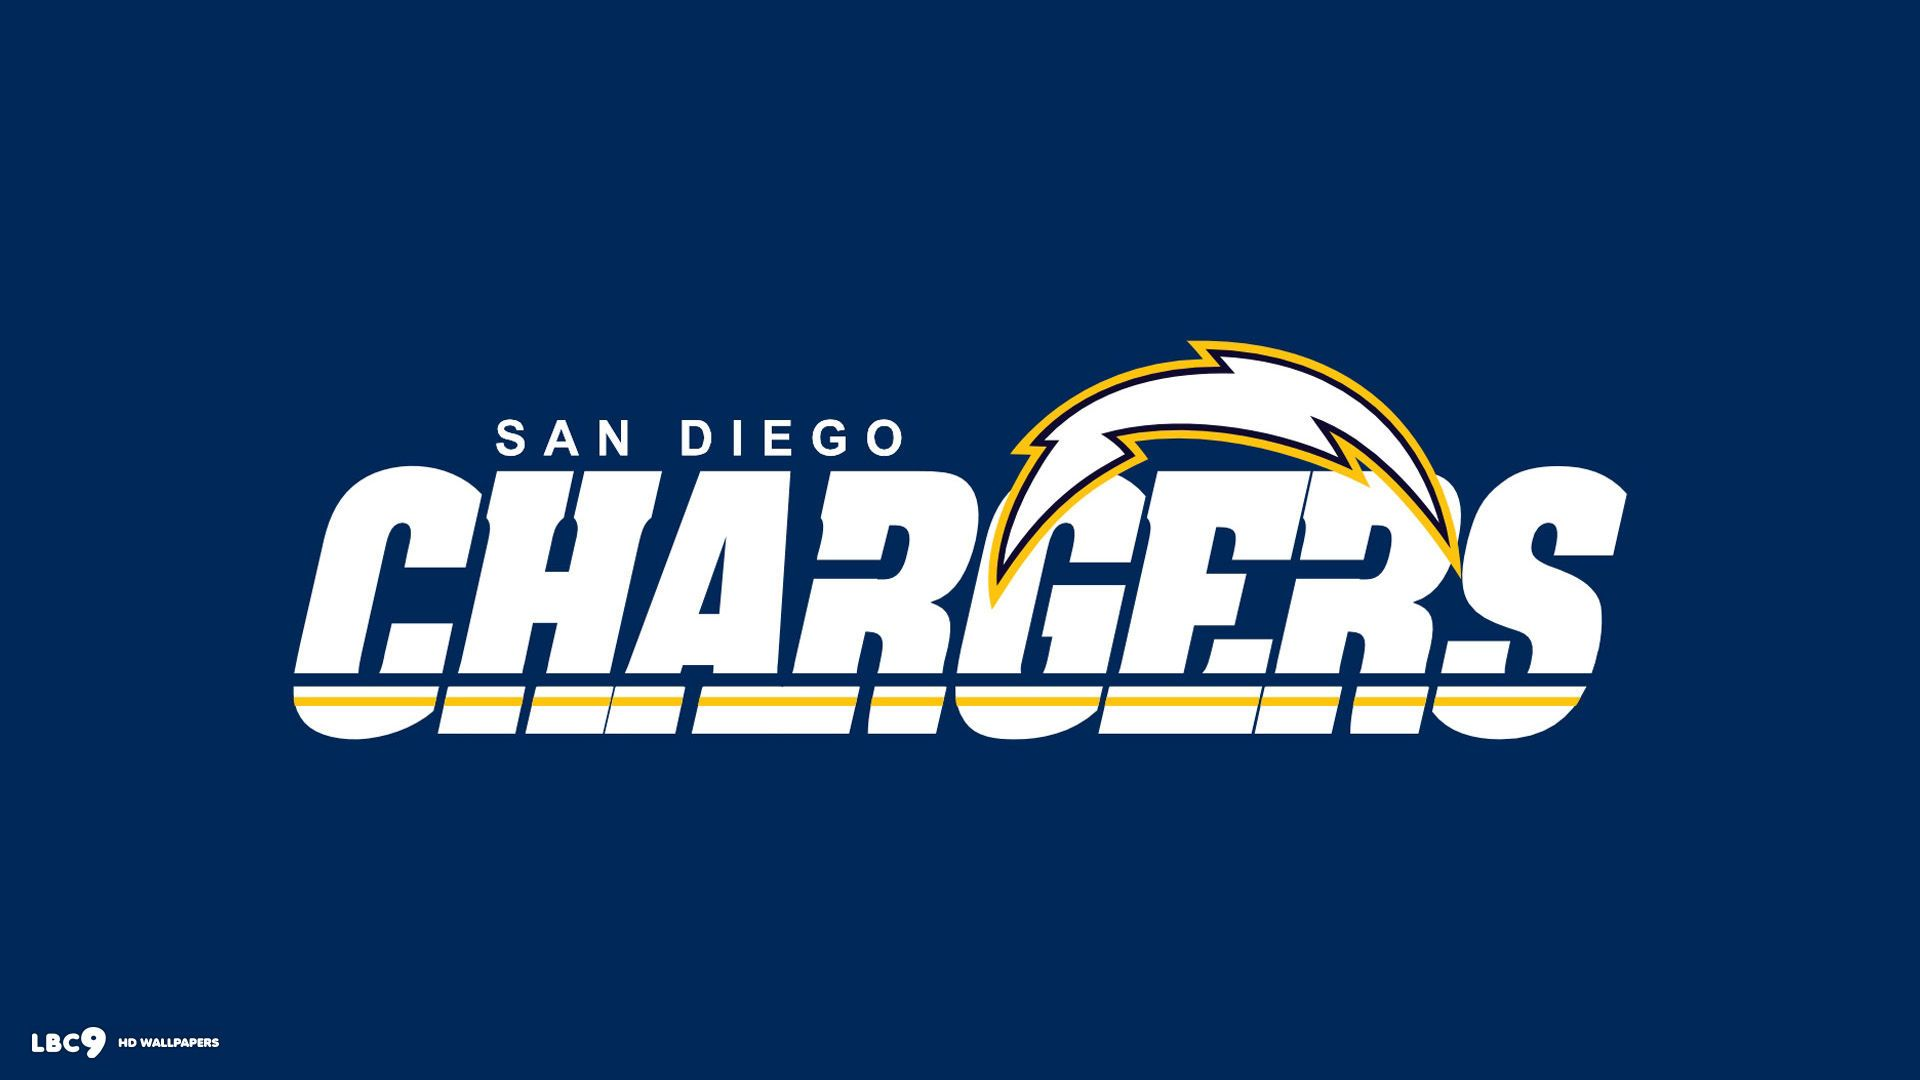 Ohio State Football Hd Wallpaper San Diego Chargers Wallpapers Hd Download Pixelstalk Net